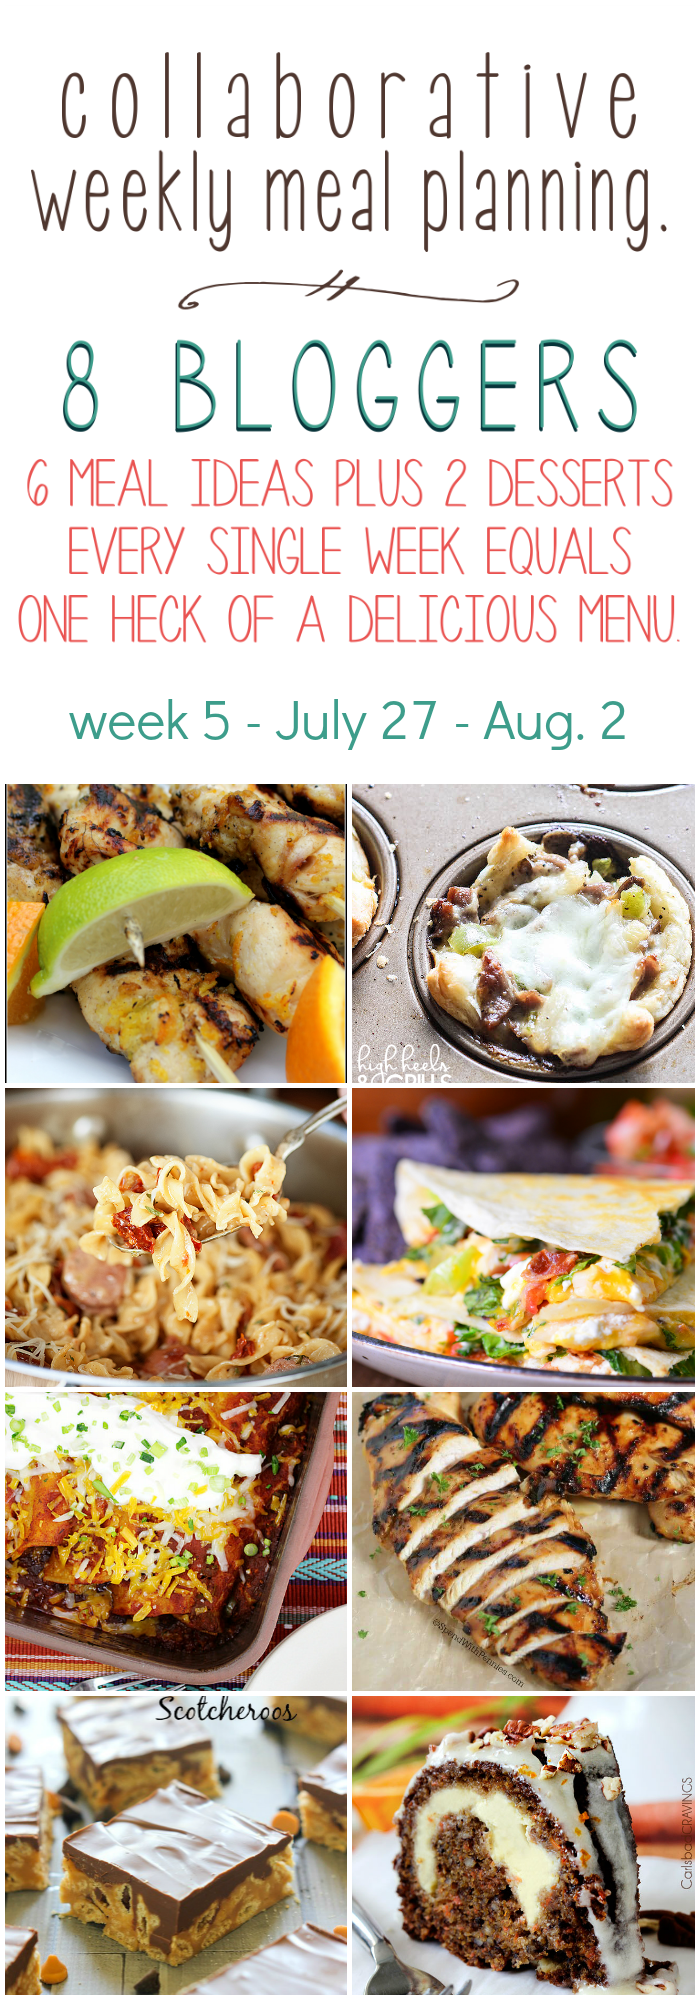 Collaborative weekly meal planning. 8 bloggers. 6 meal ideas plus 2 desserts every single week equals one heck of a delicious menu - Week 5